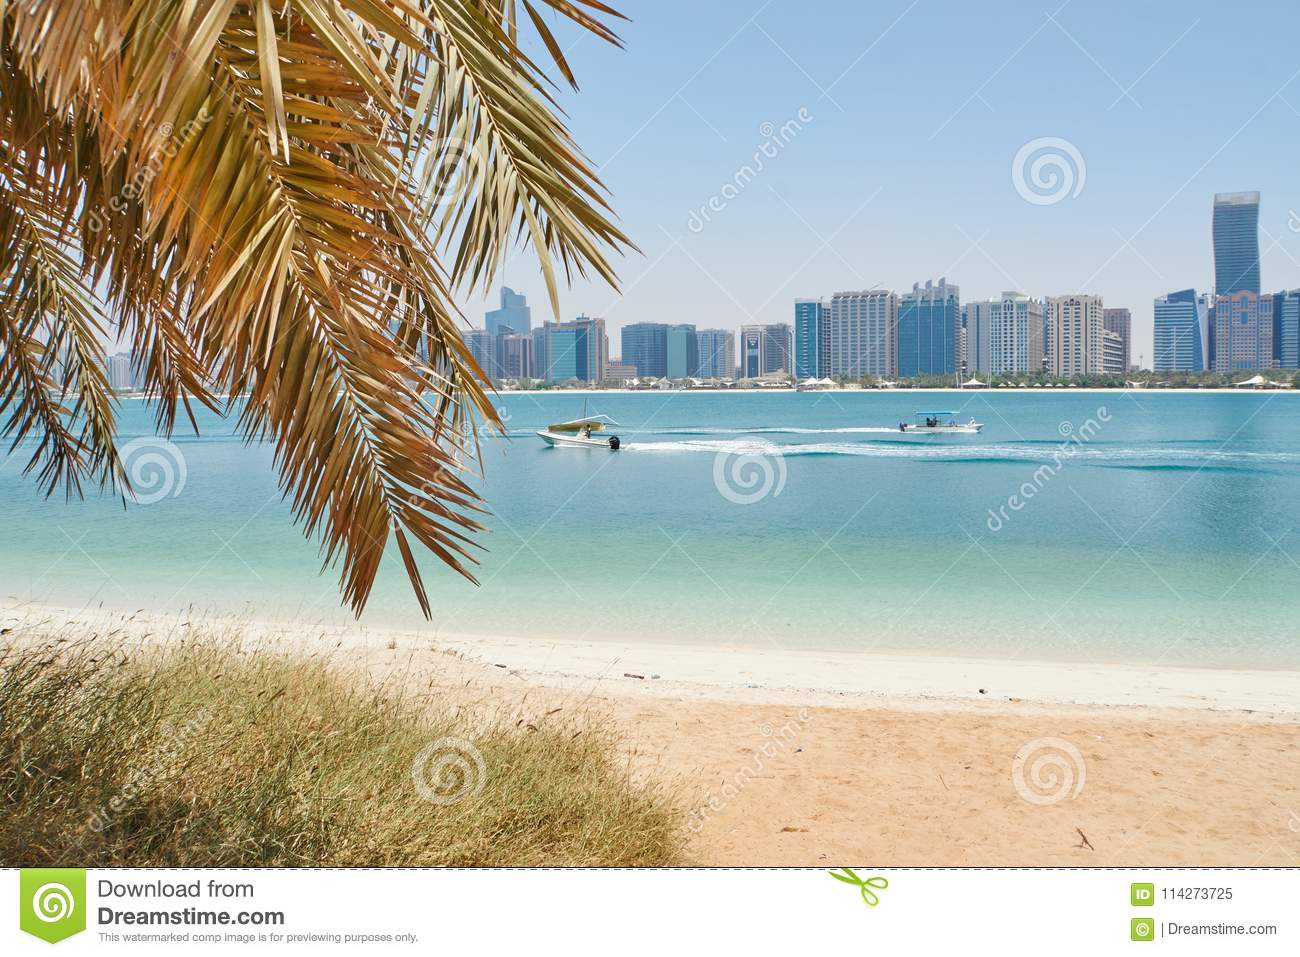 Beach view on abu dhabi skyline